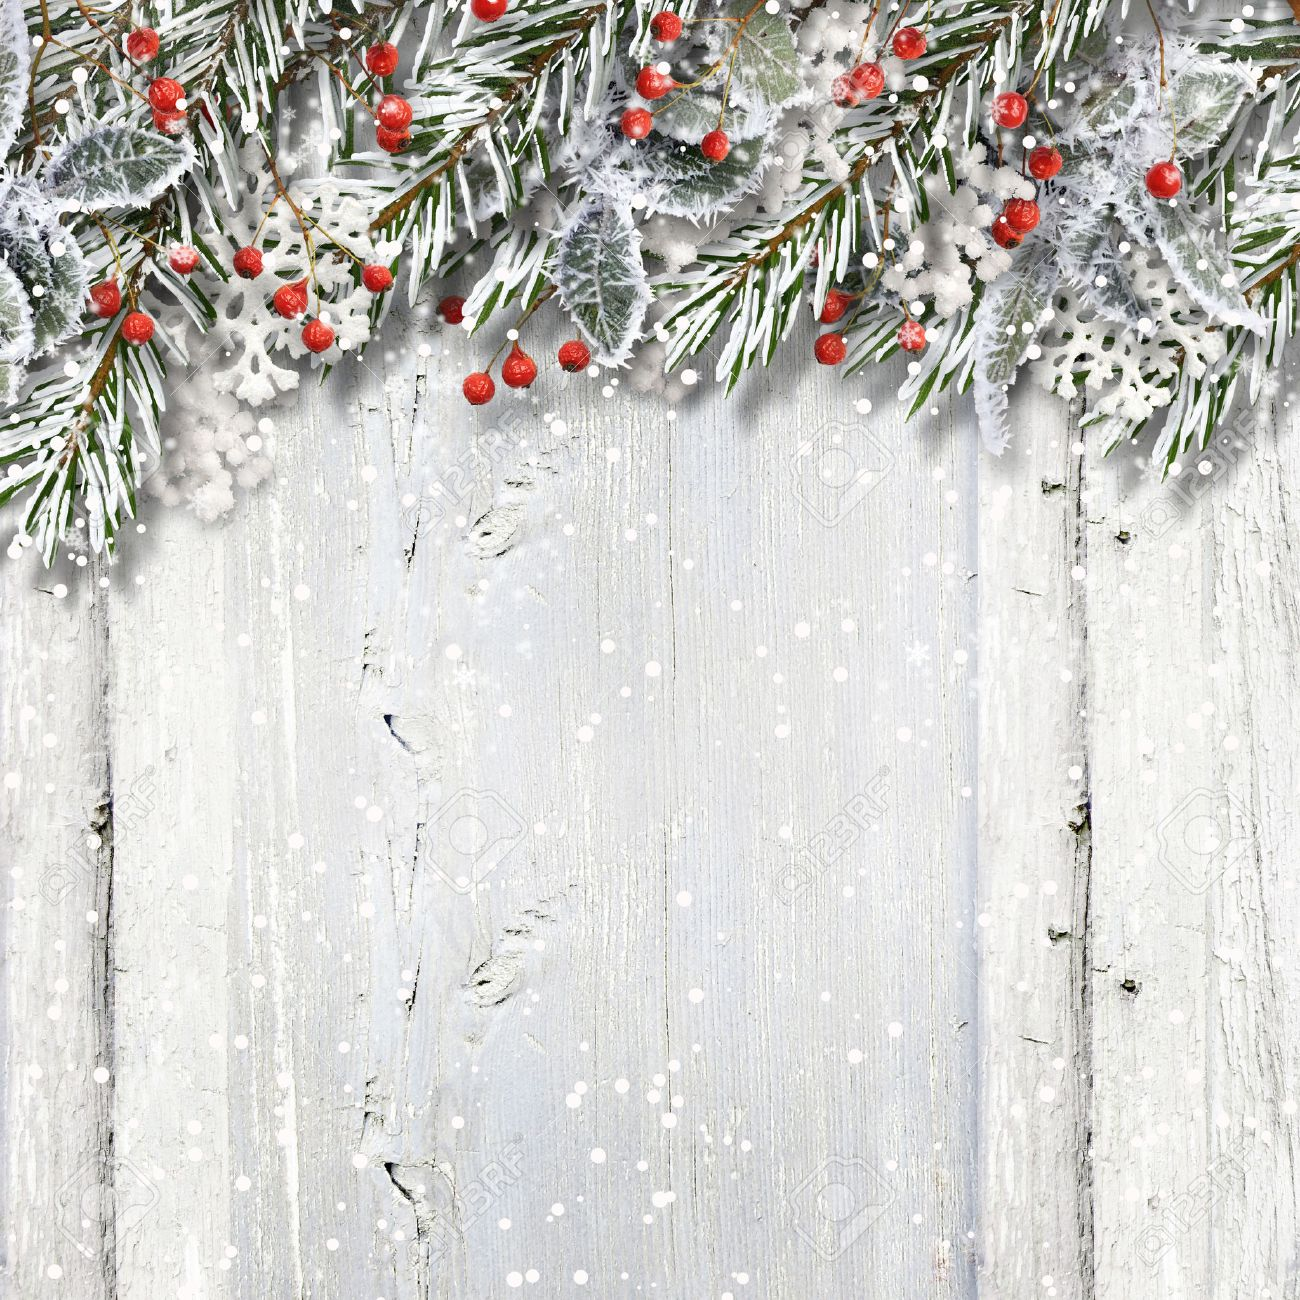 Christmas wooden background with fir branches and holly - 48862612